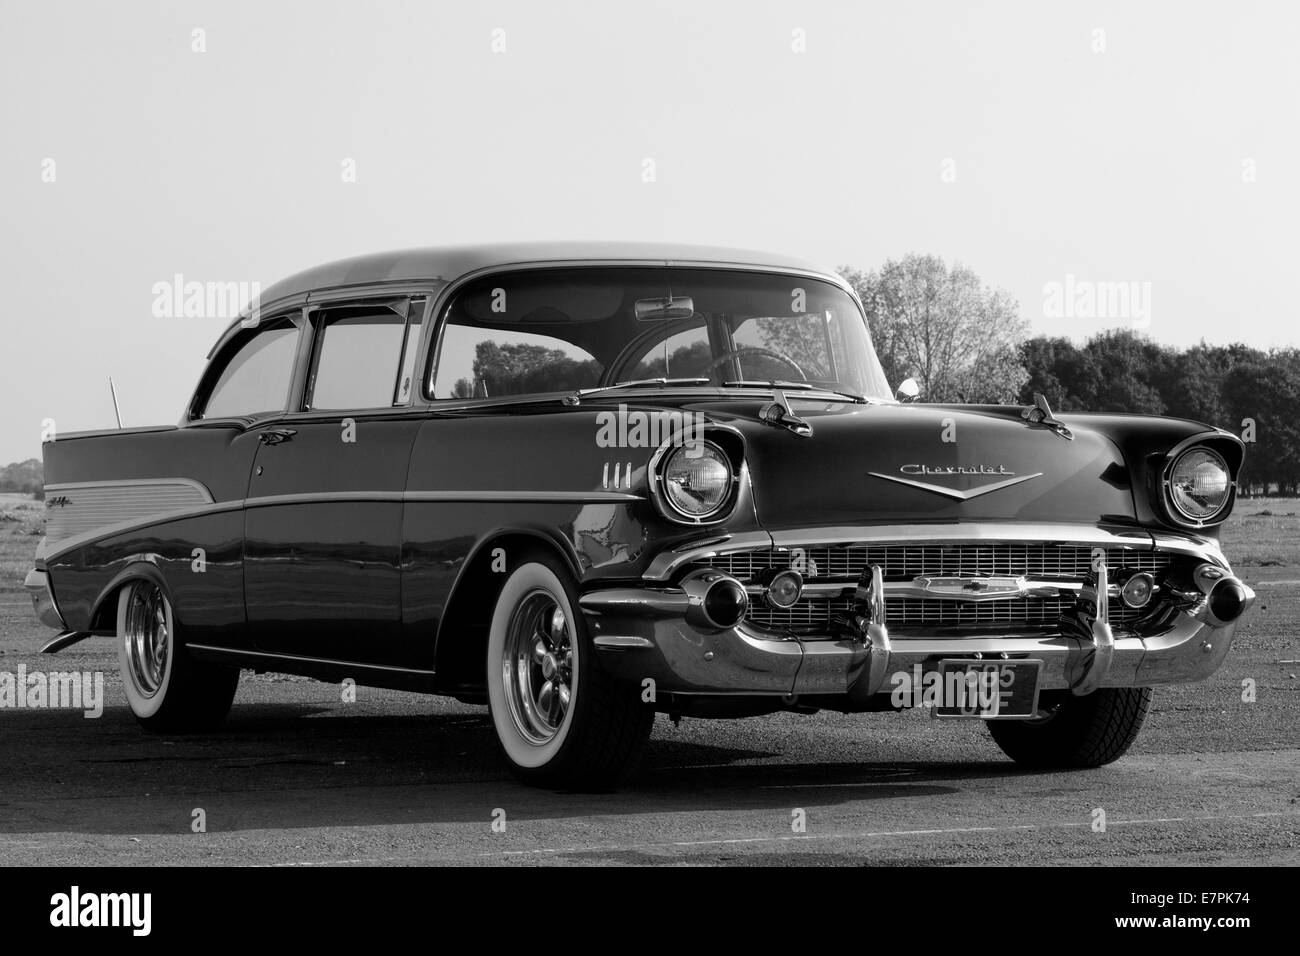 1950s Chevrolet. Chevy. Classic American car Black And white Stock ...